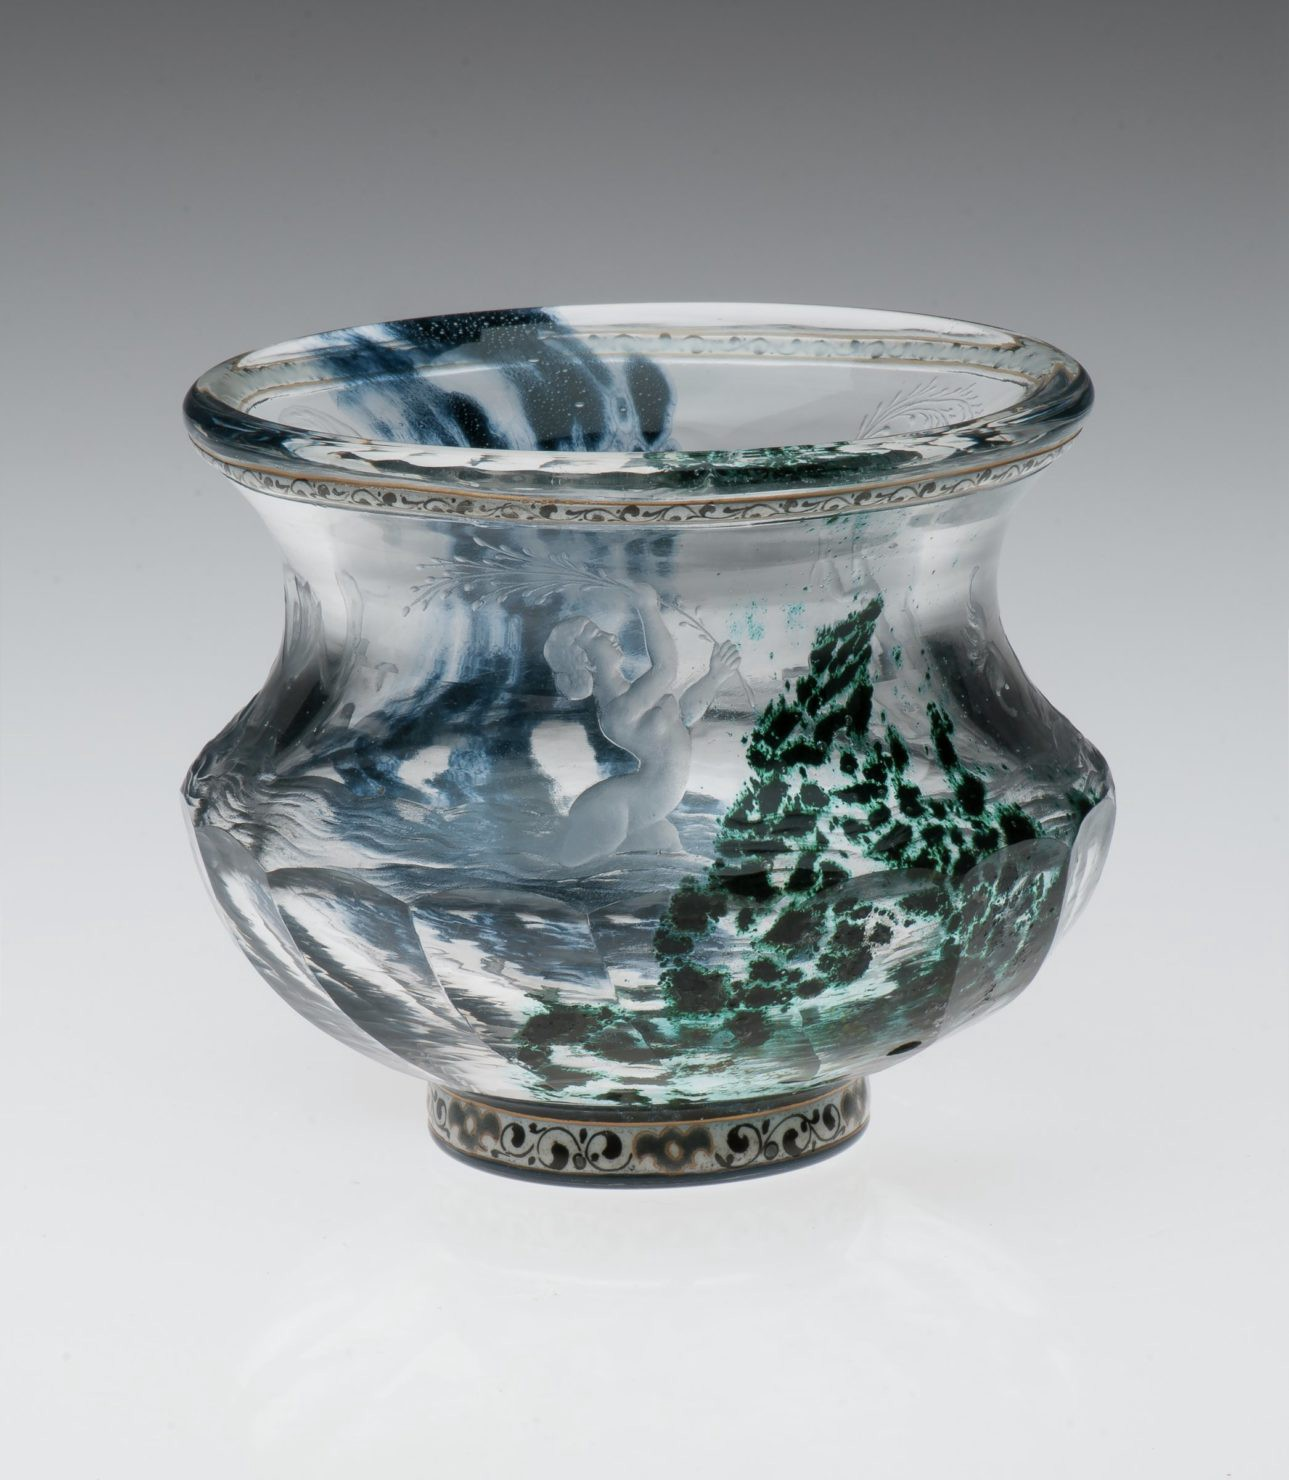 A clear glass vase with intaglio carving and watery patterns of blue and green swirling around a female figure.